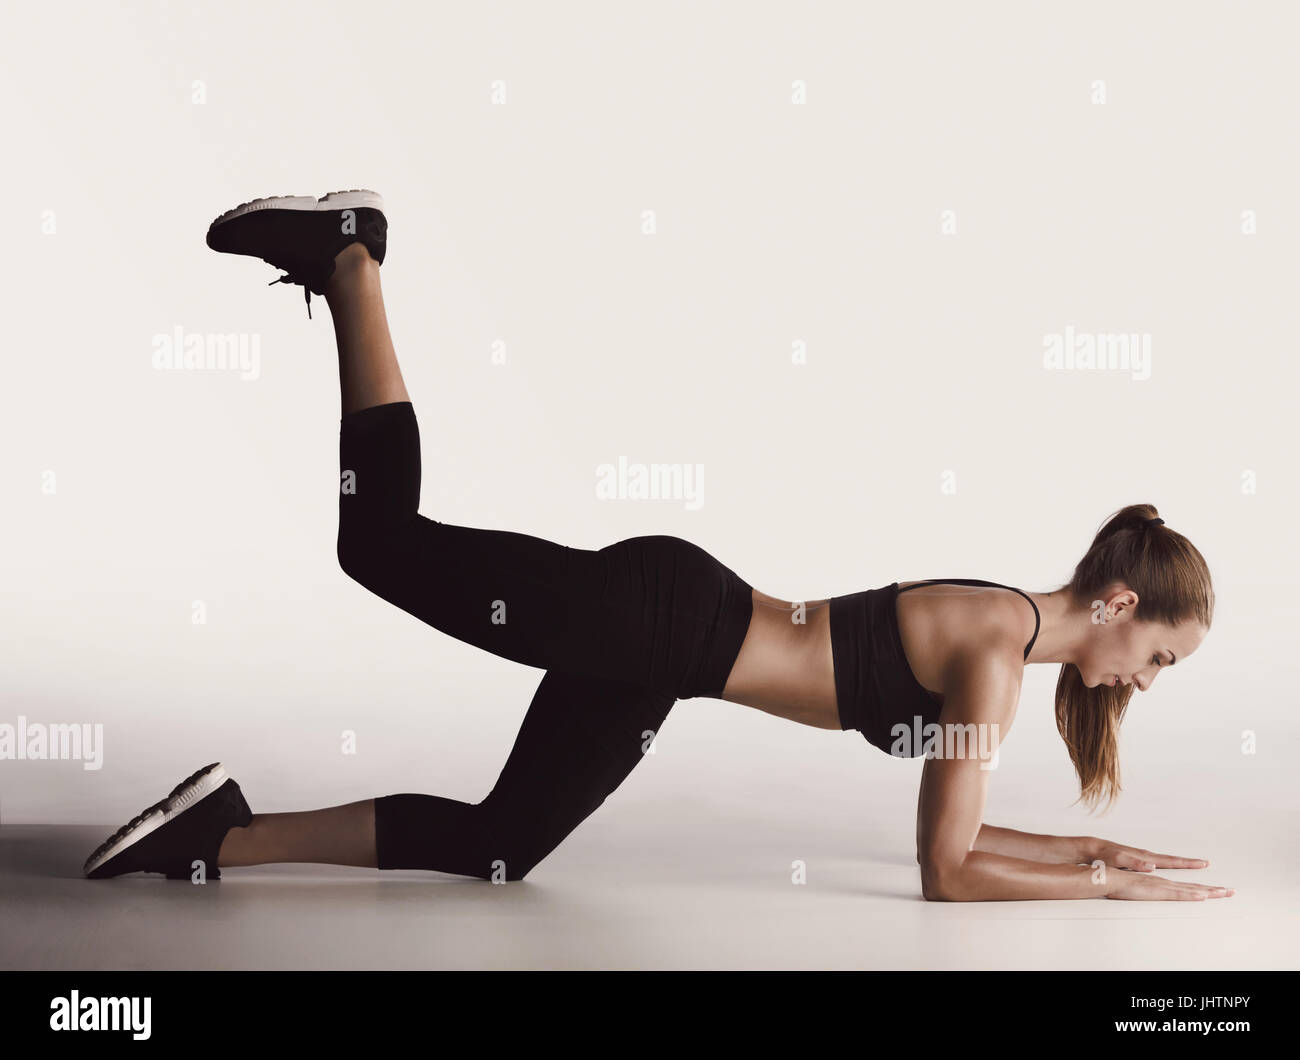 Shot of a young woman doing leg exercises - Stock Image